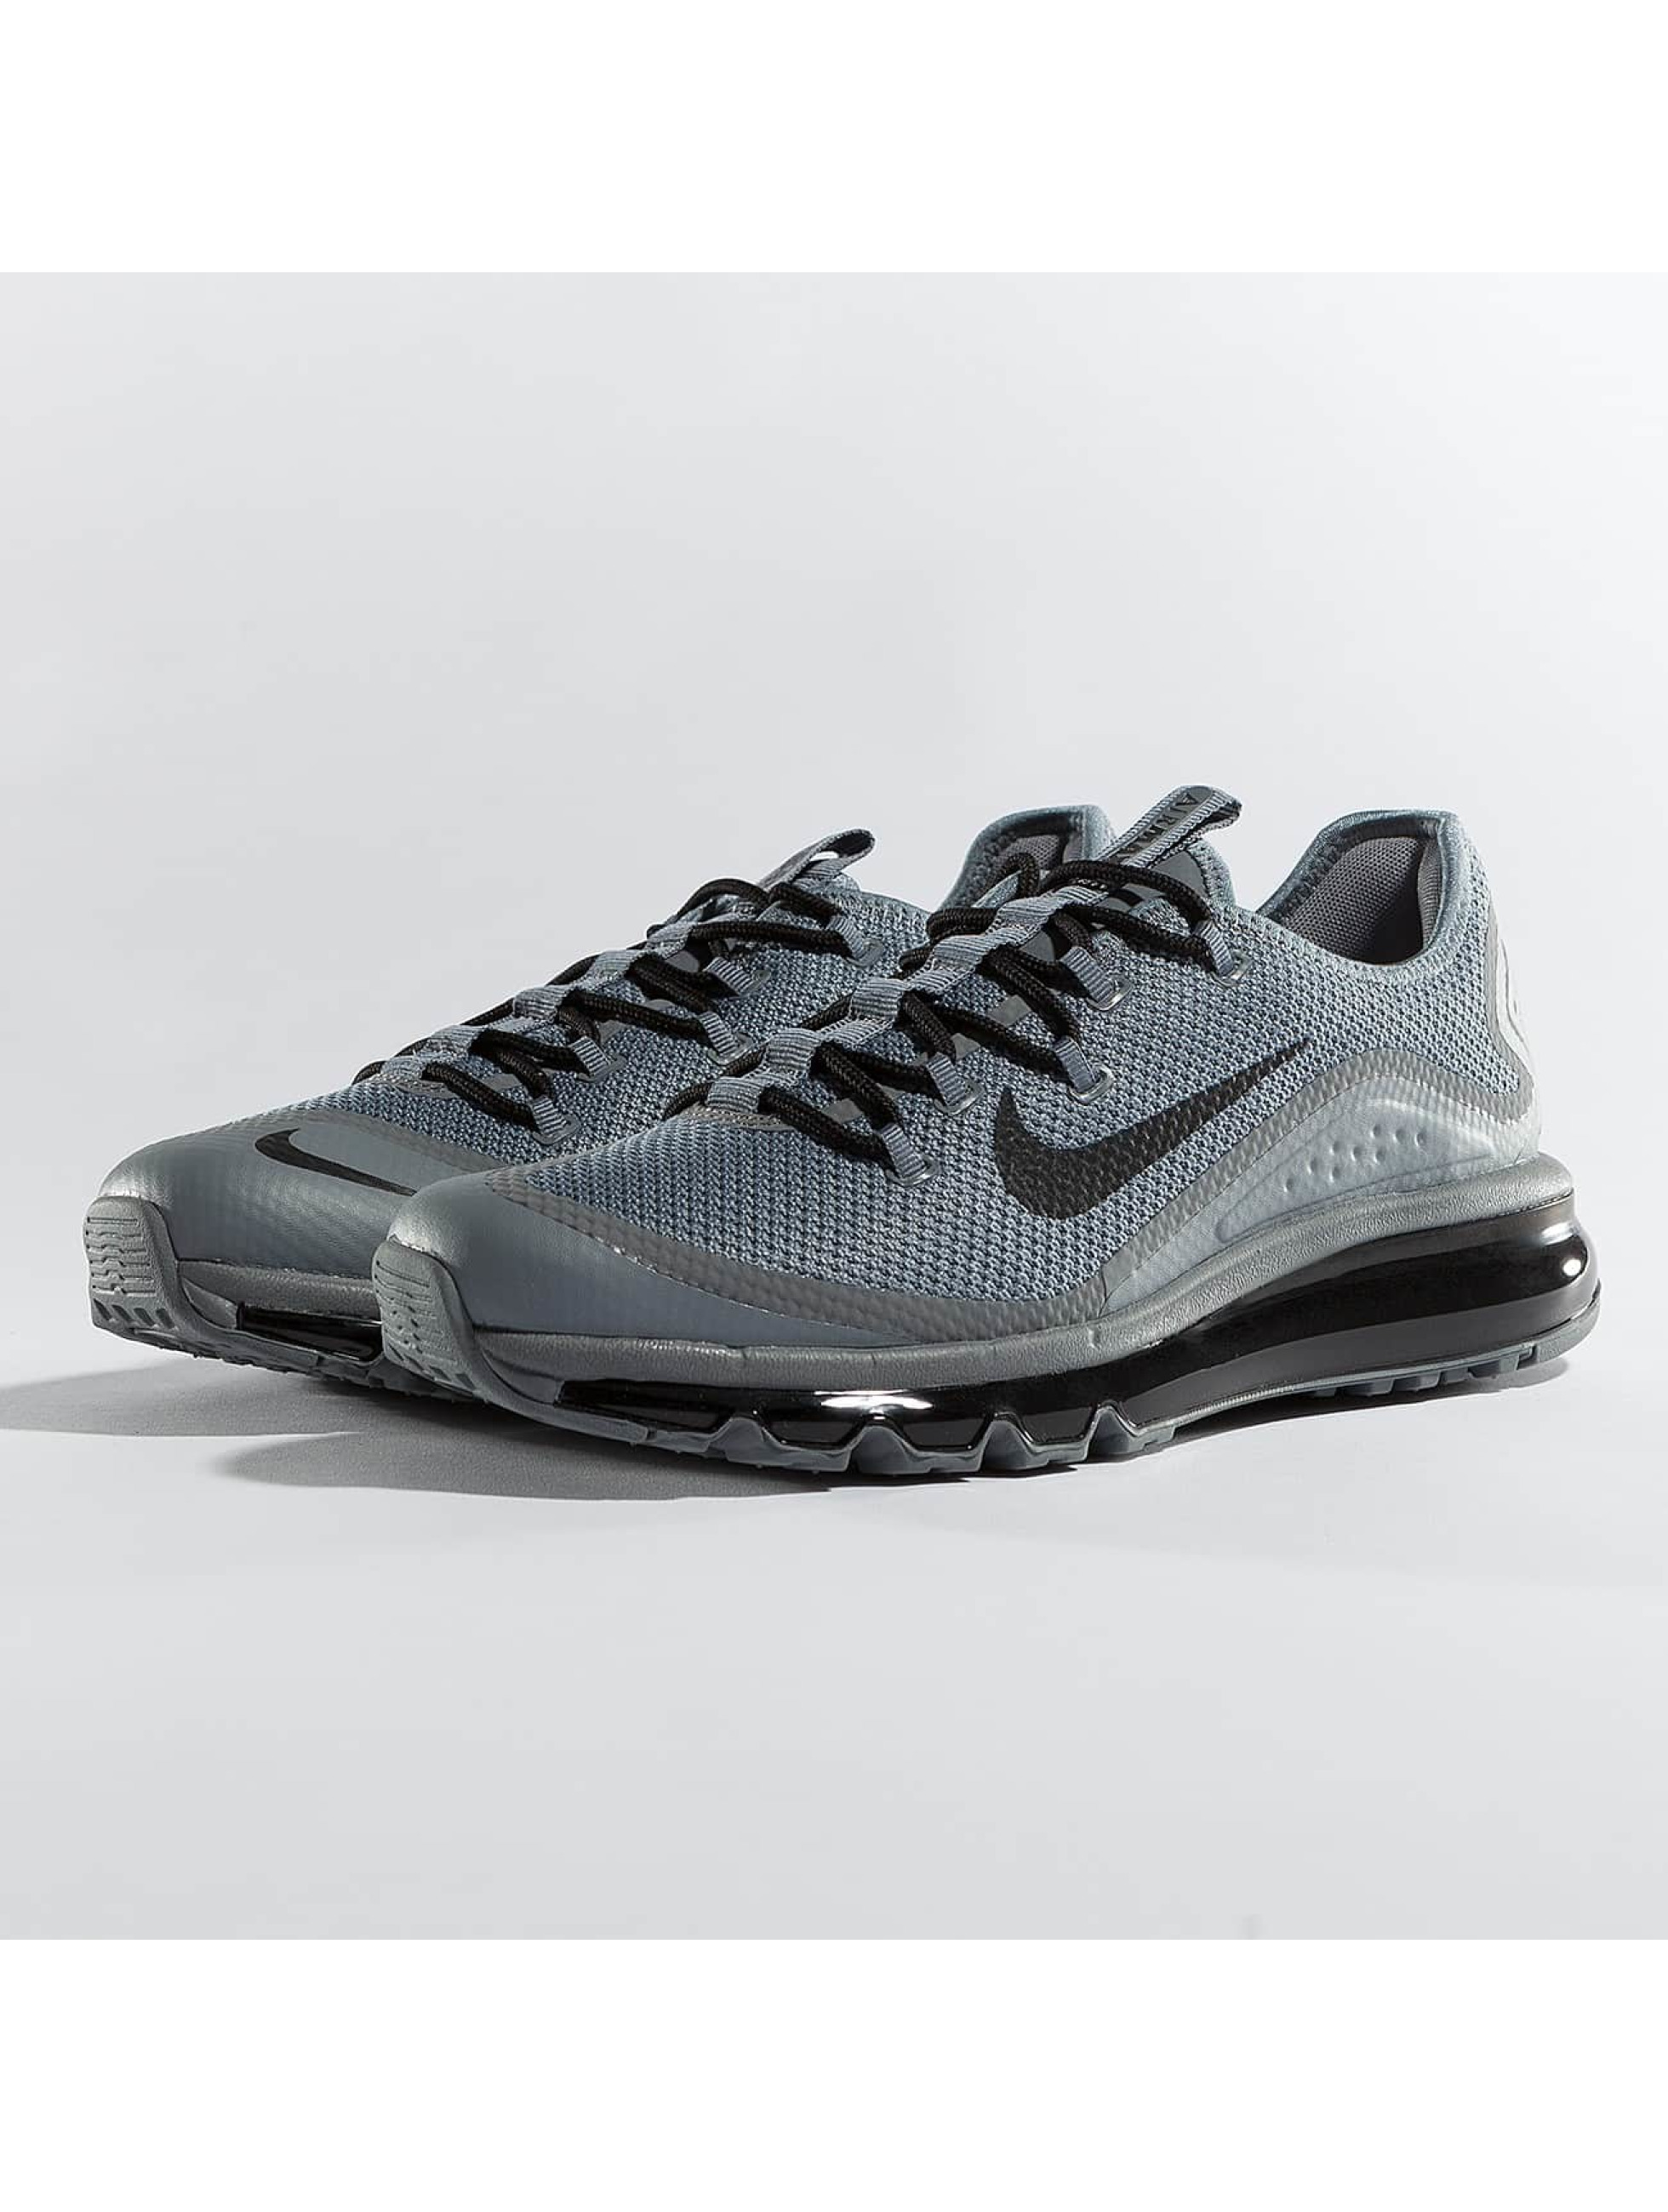 Nike Zapatillas de deporte Air Max More gris